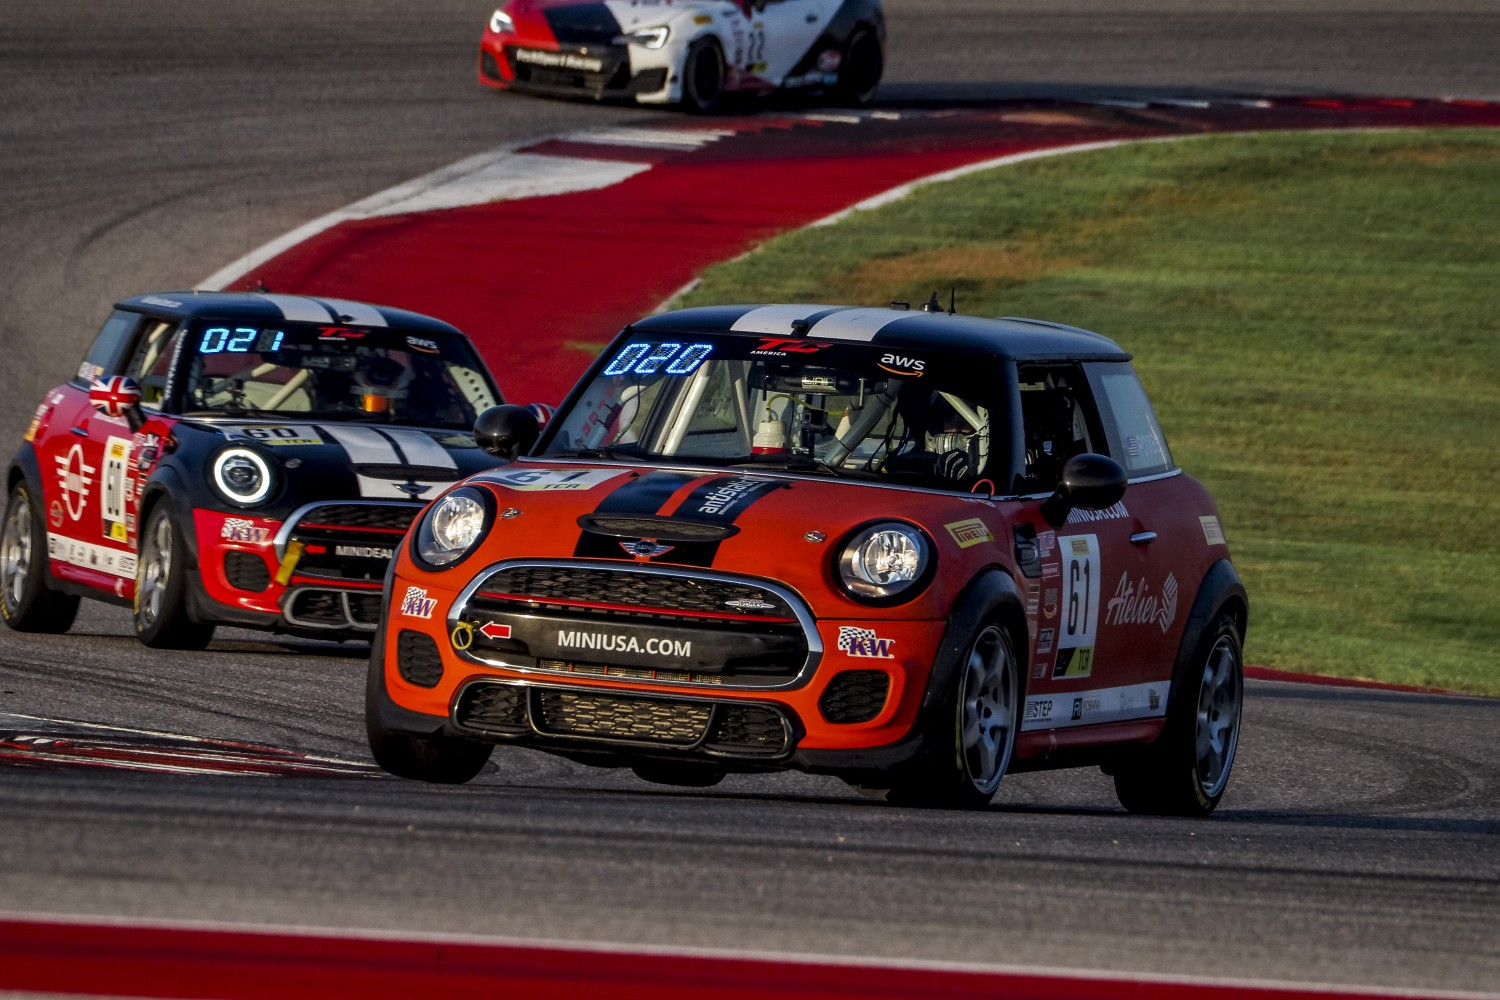 #61 MINI Cooper JCW of Mark Pombo, MINI JCW Team, TCA, SRO America, Circuit of the Americas, Austin TX, September 2020.  | Brian Cleary/SRO